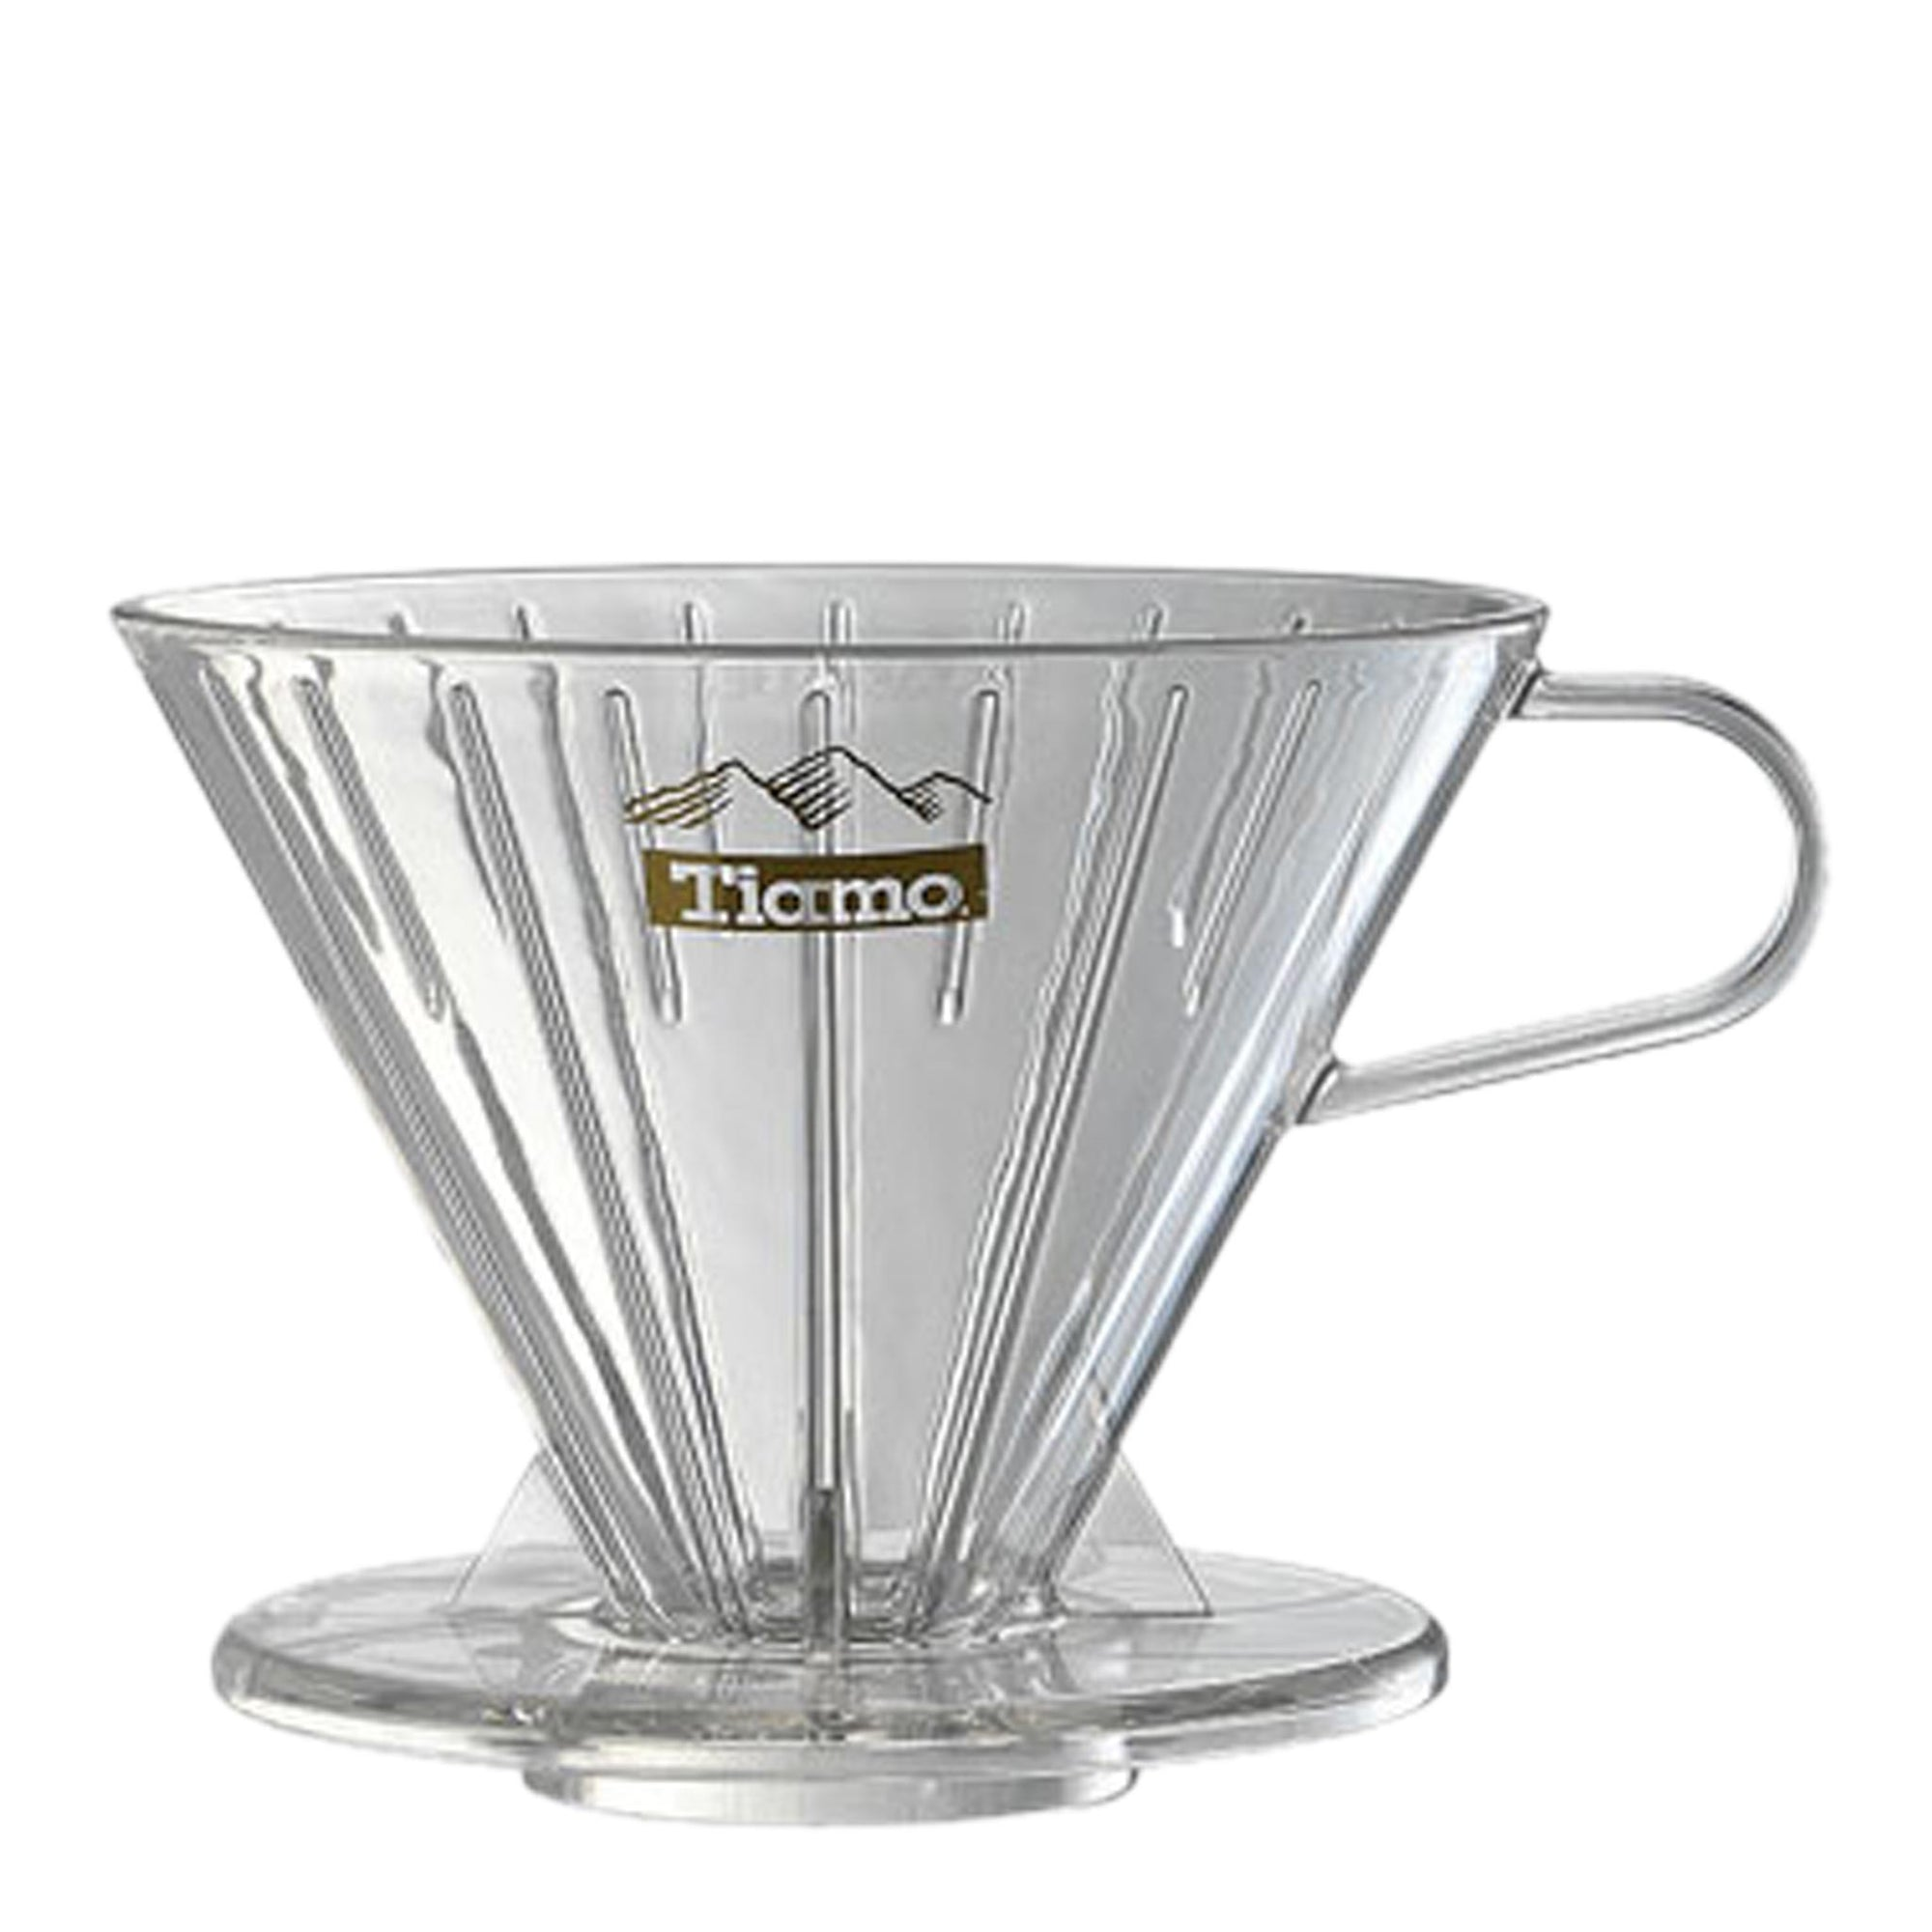 Tiamo Filter V02 Transparent - Espresso Gear